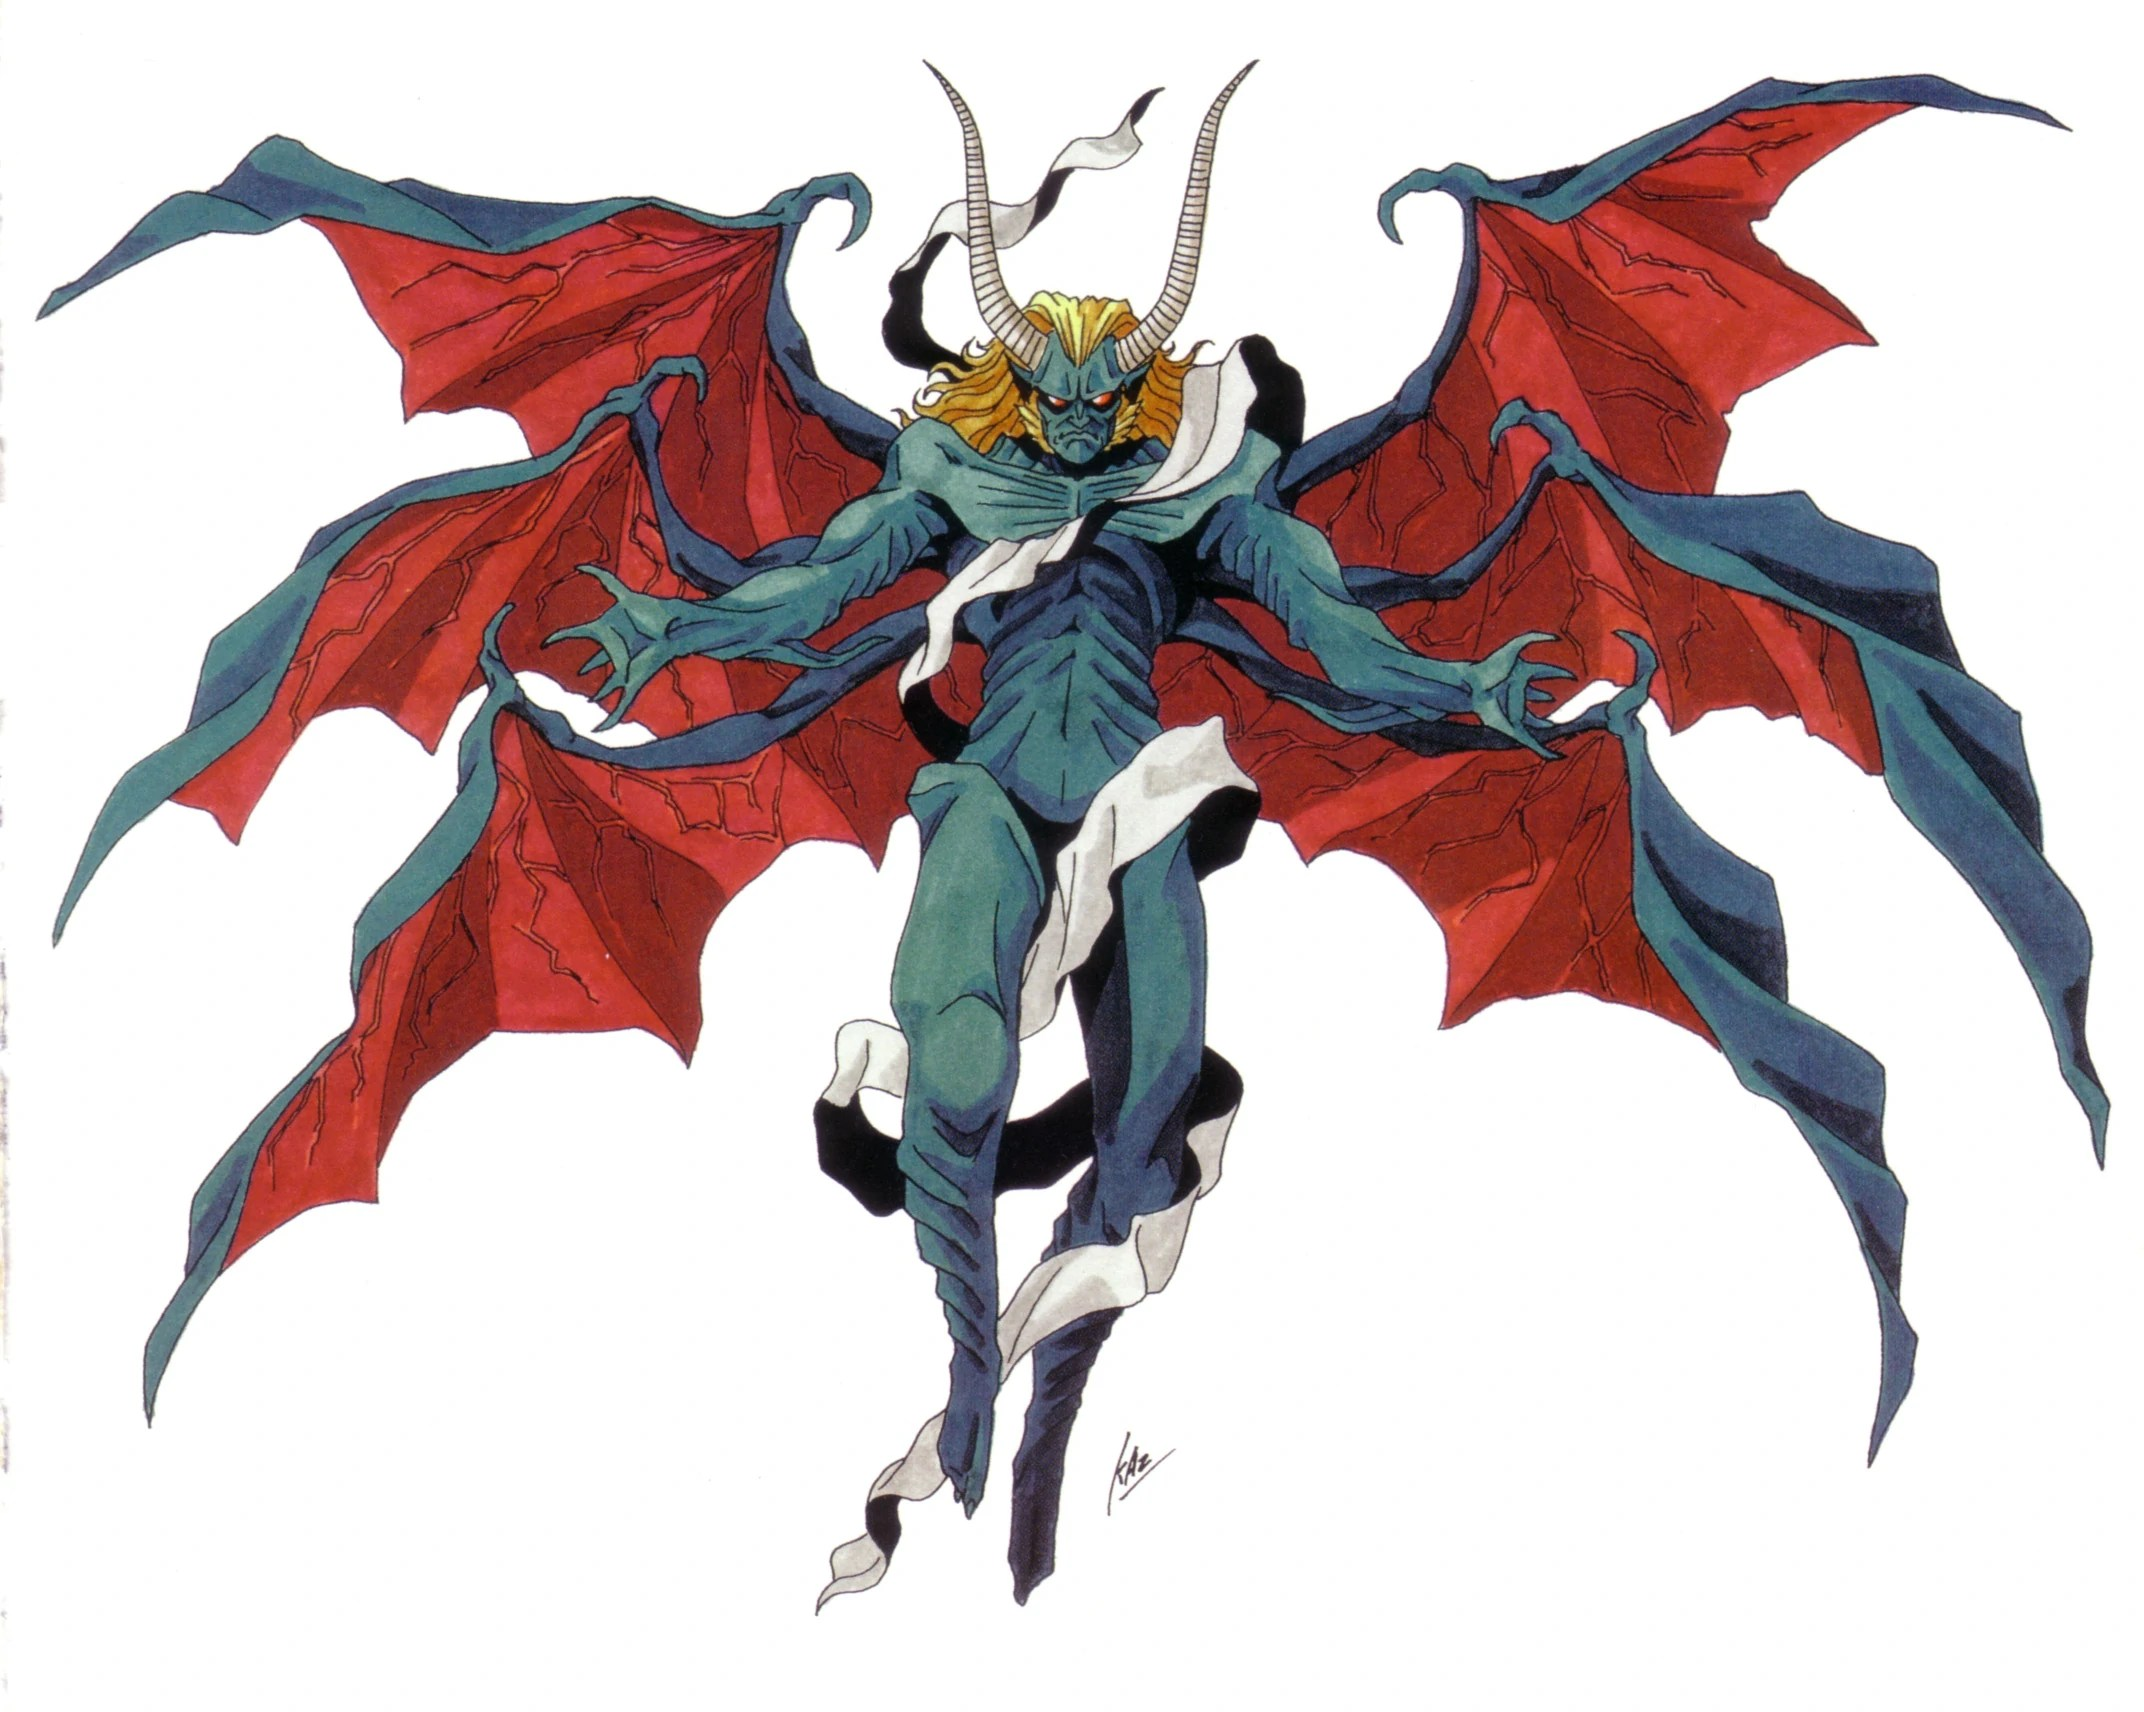 A more demonic artwork of Lucifer from Shin Megami Tensei II, just for the lulz